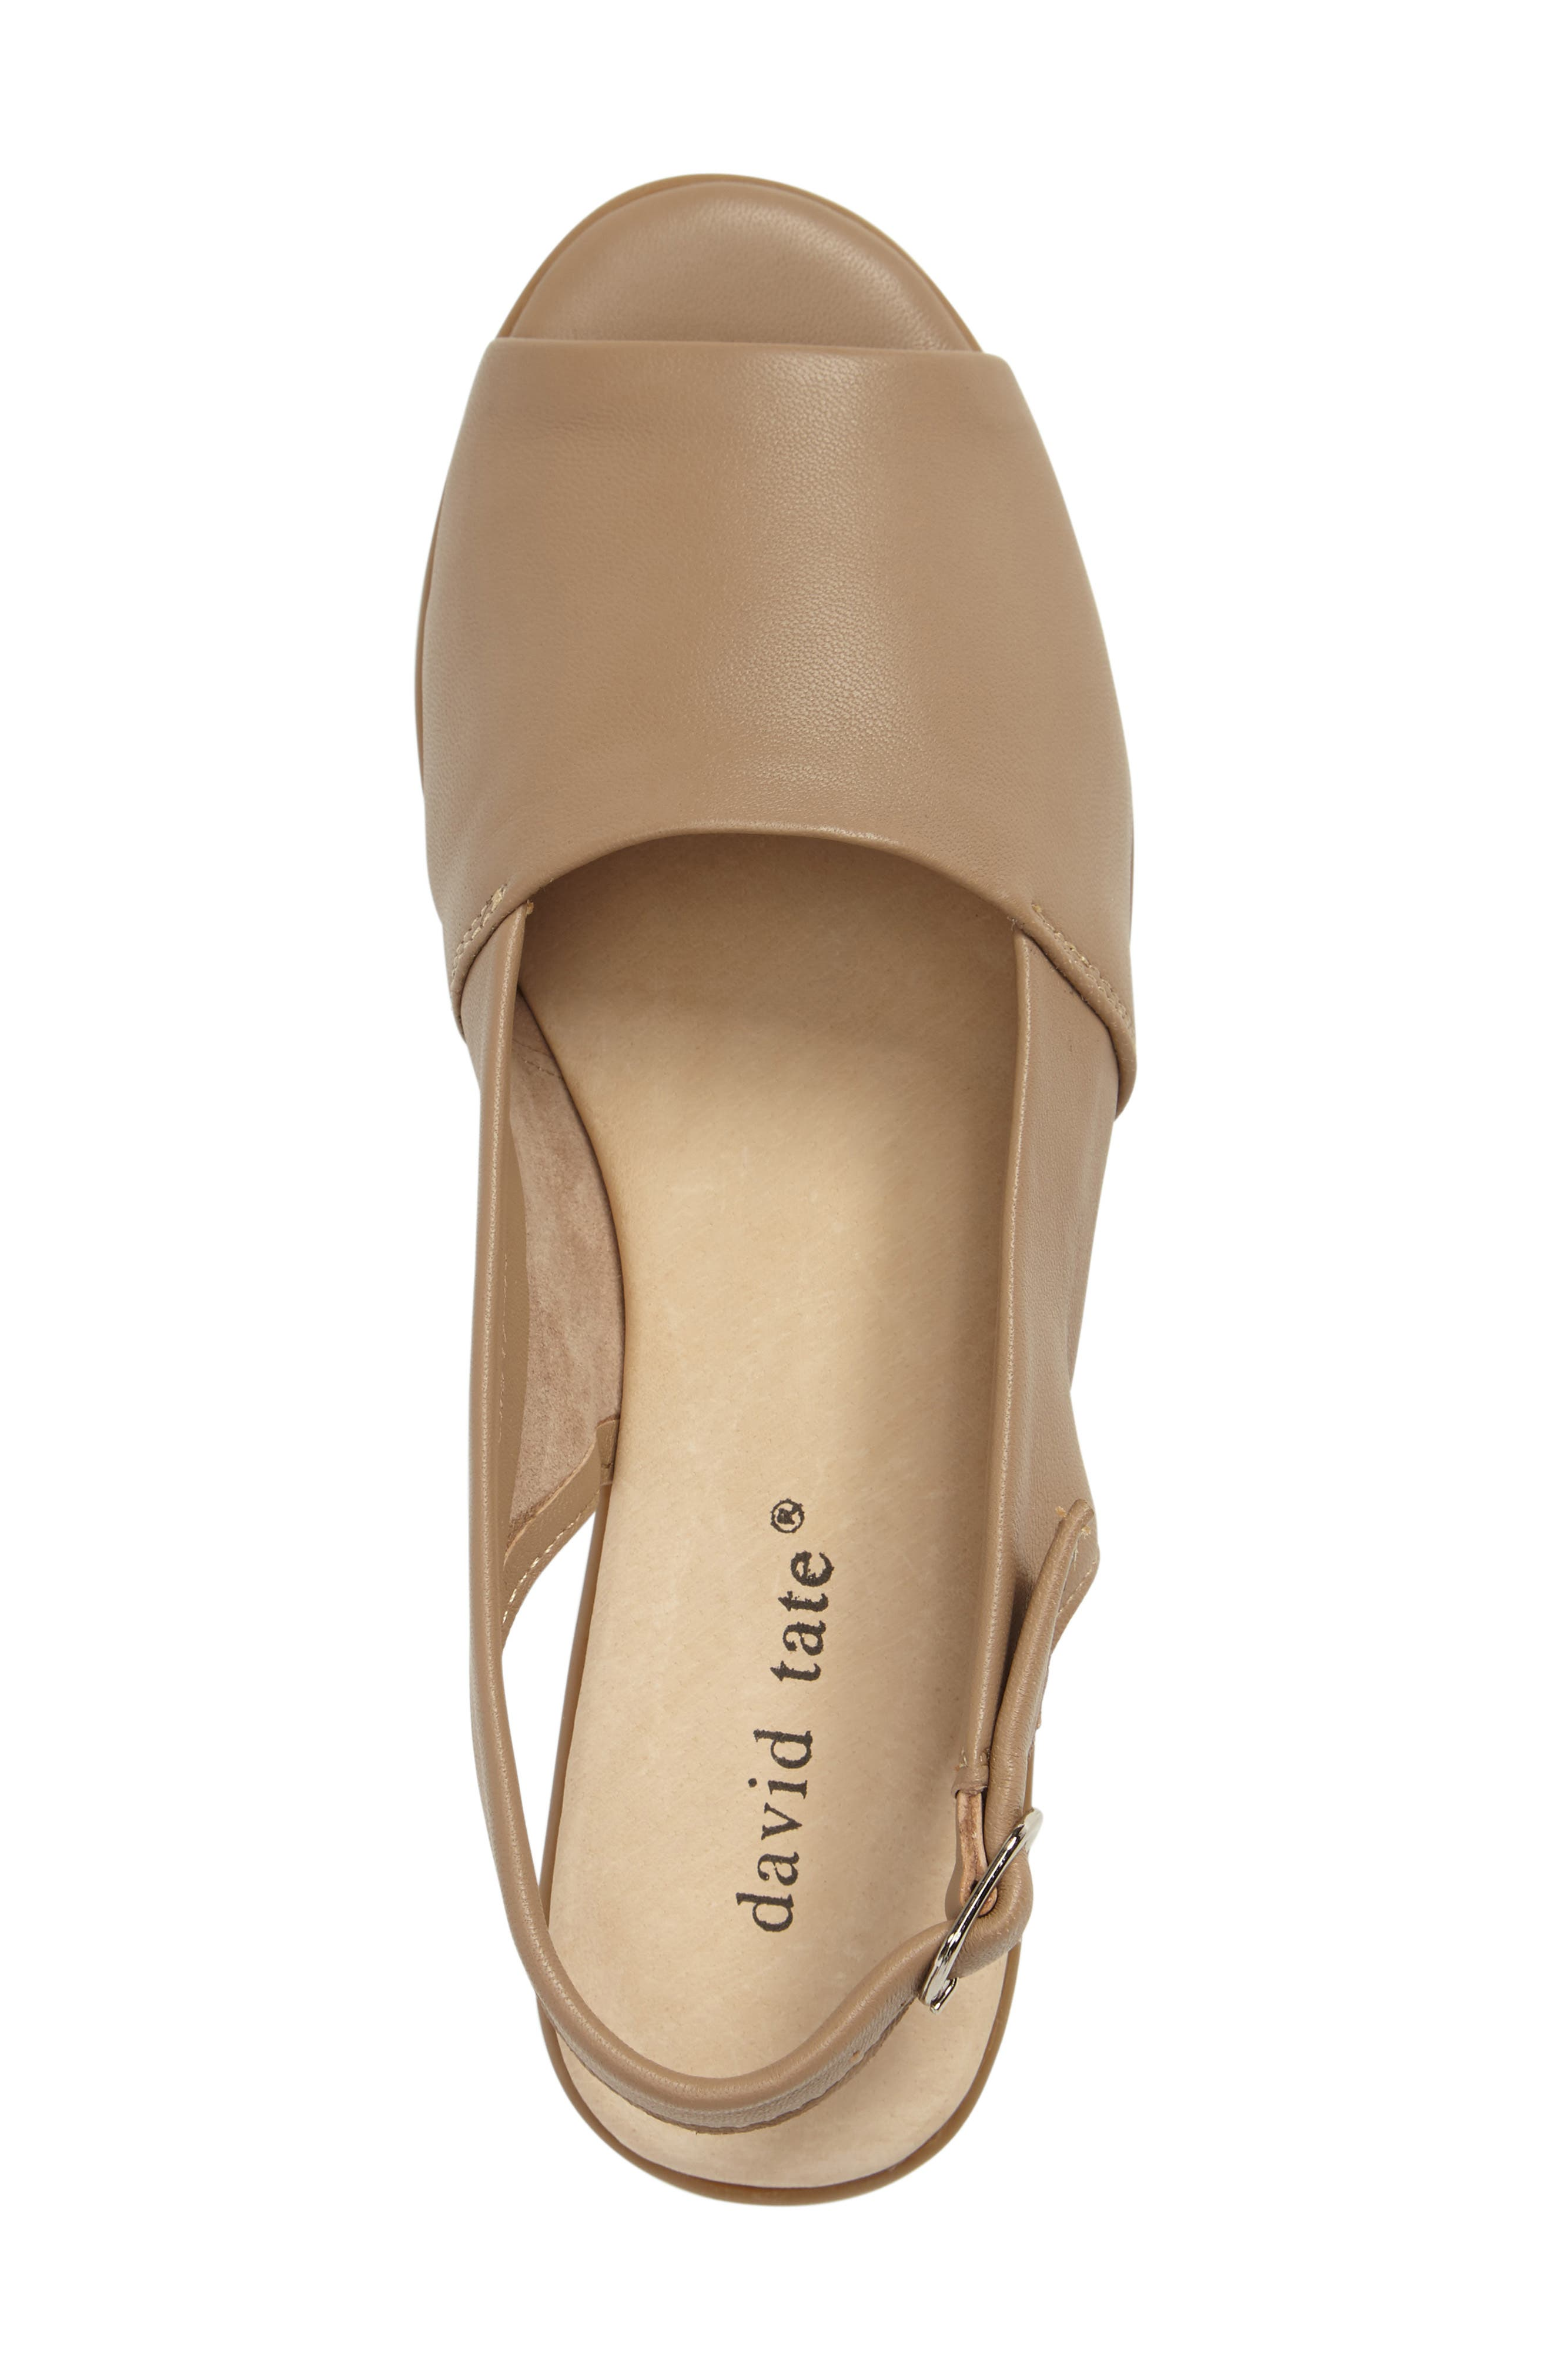 Norma Slingback Sandal,                             Alternate thumbnail 3, color,                             Camel Leather